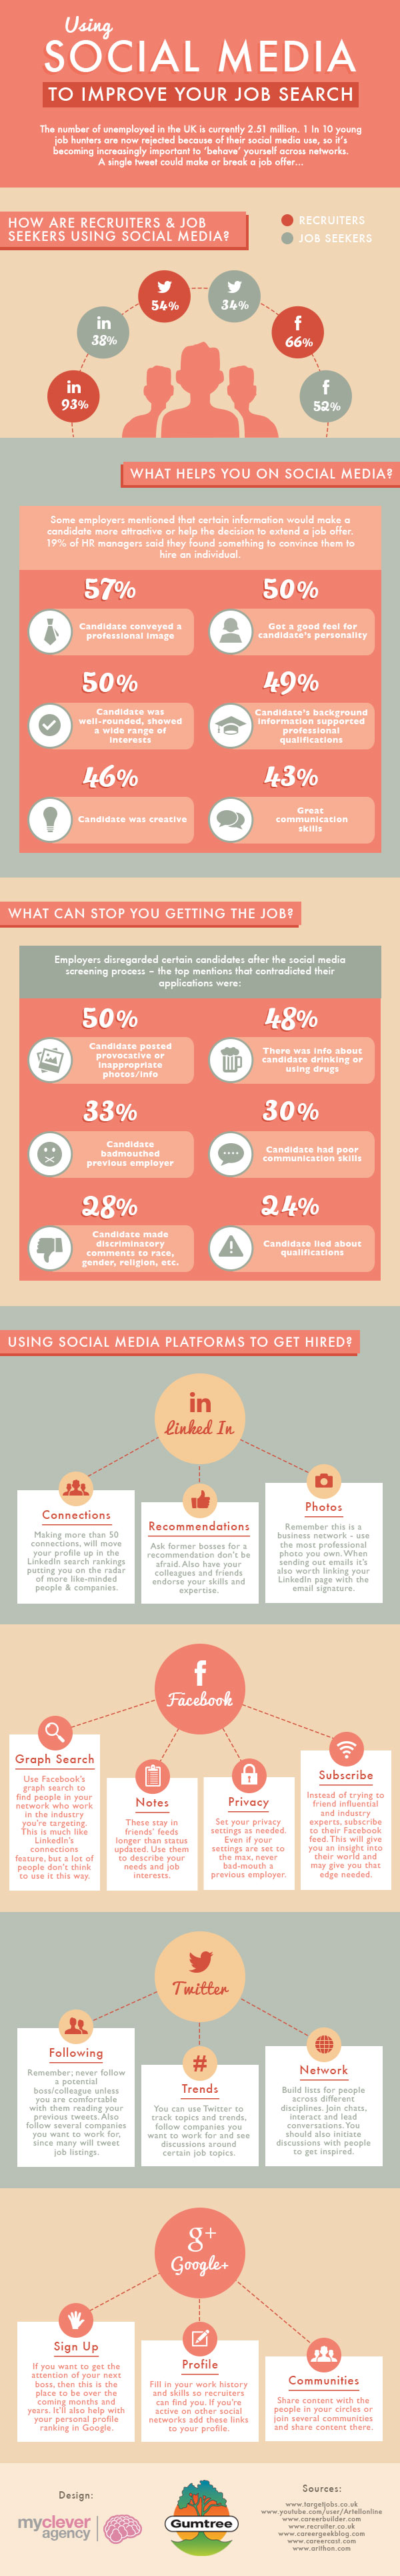 Using Social Media to improve your job search